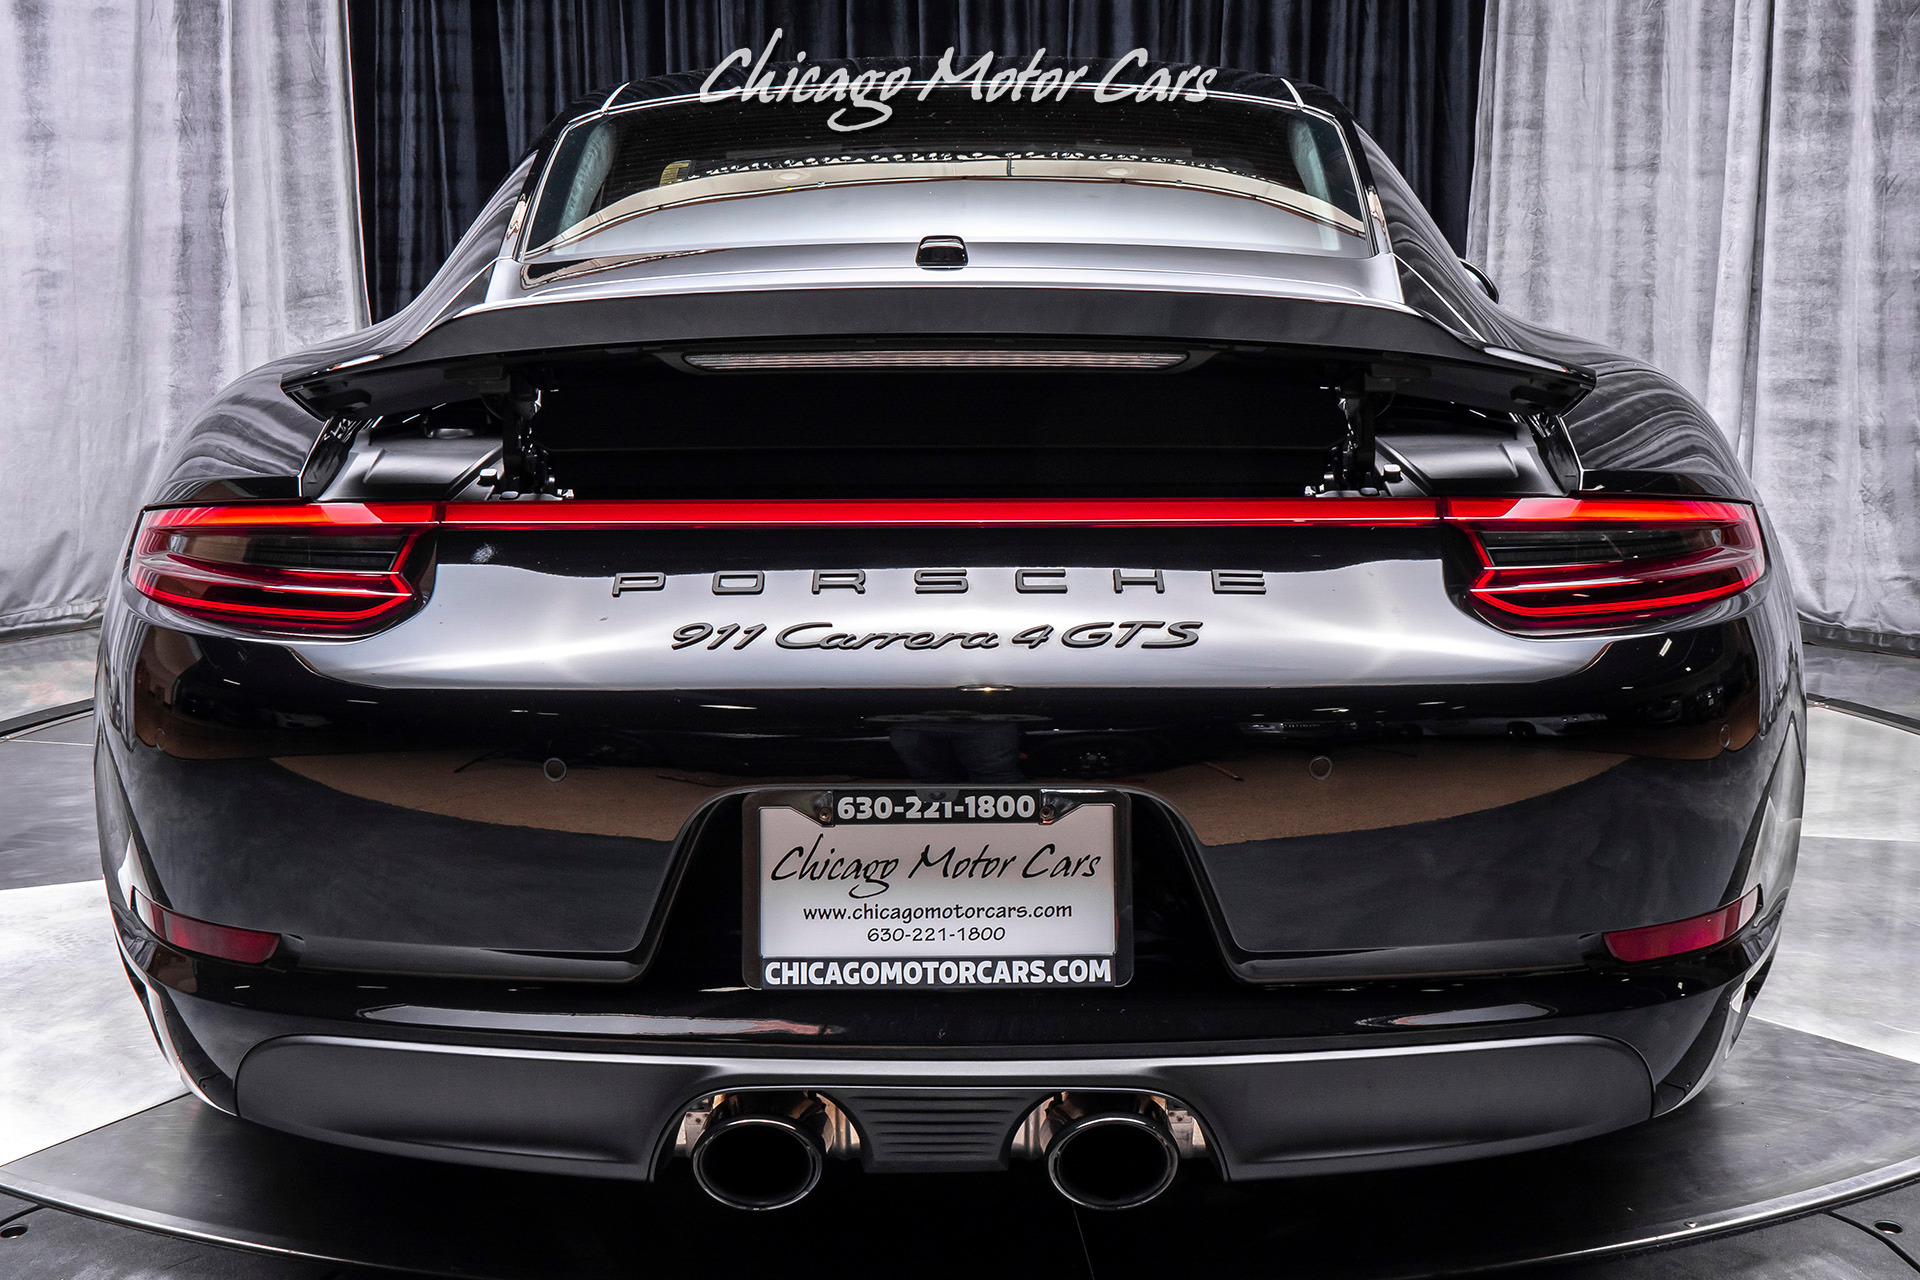 Used 2019 Porsche 911 Carrera 4 Gts Coupe Msrp 154k For